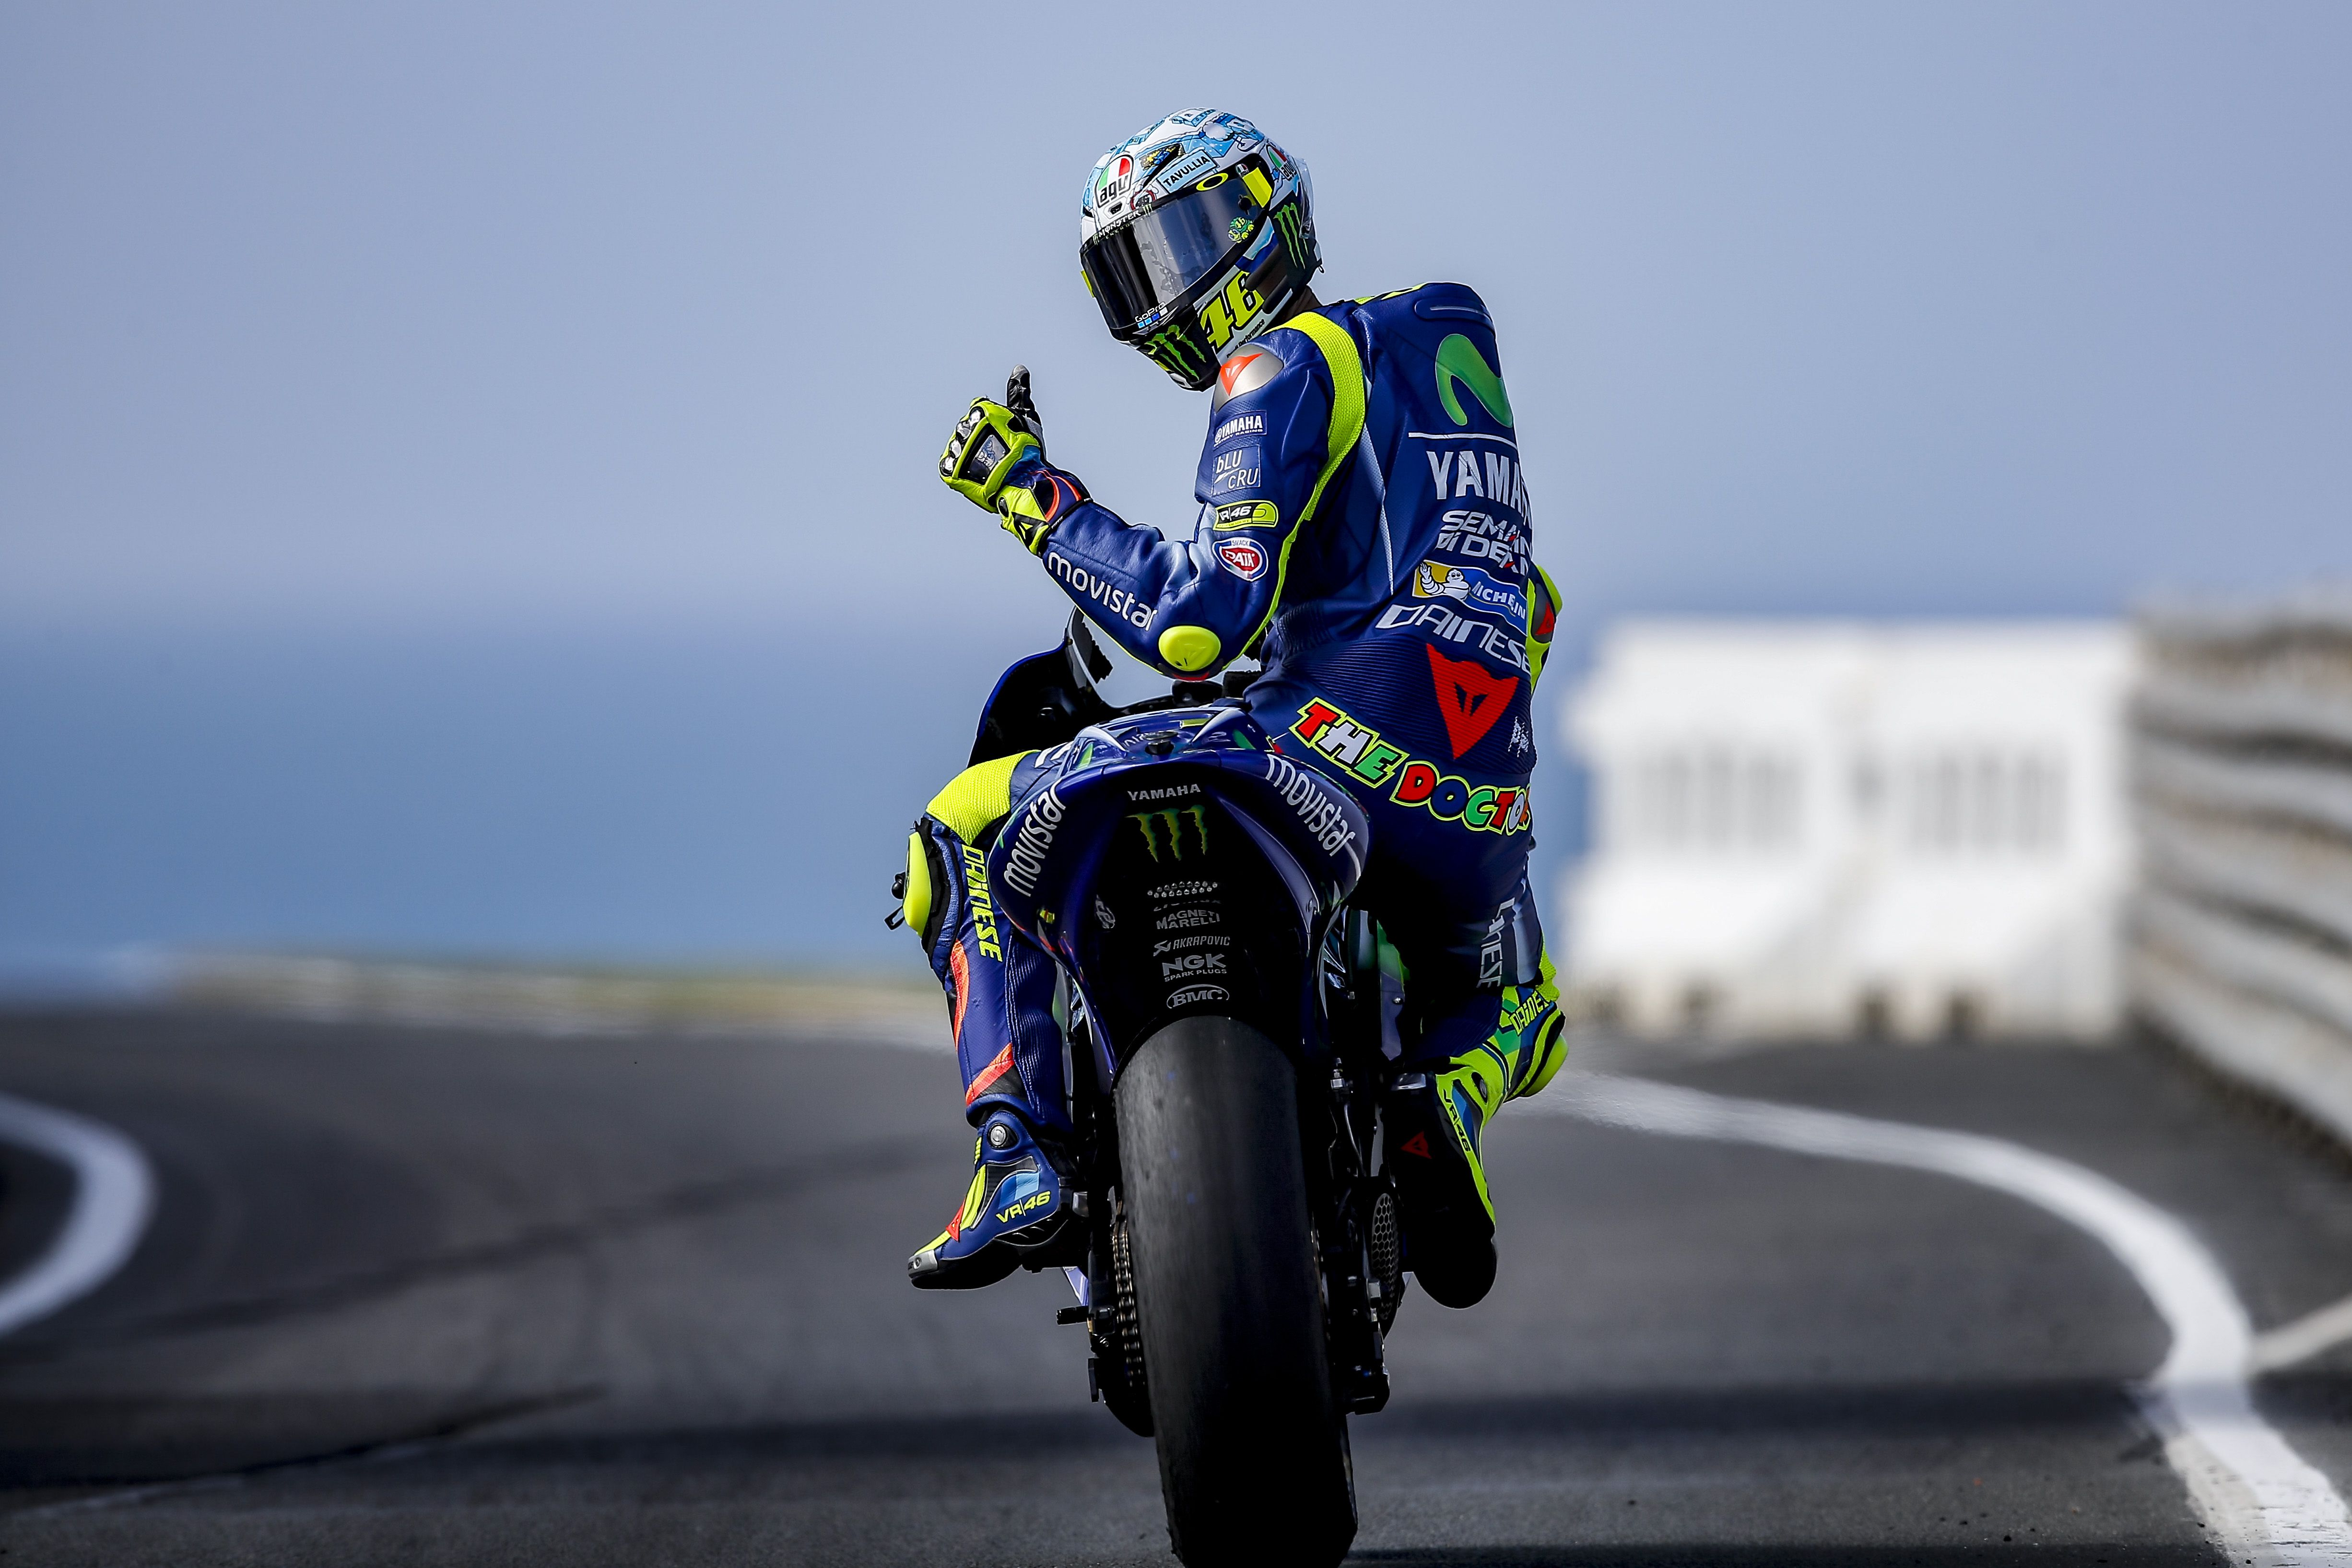 Rossi: No era suficientemente rápido